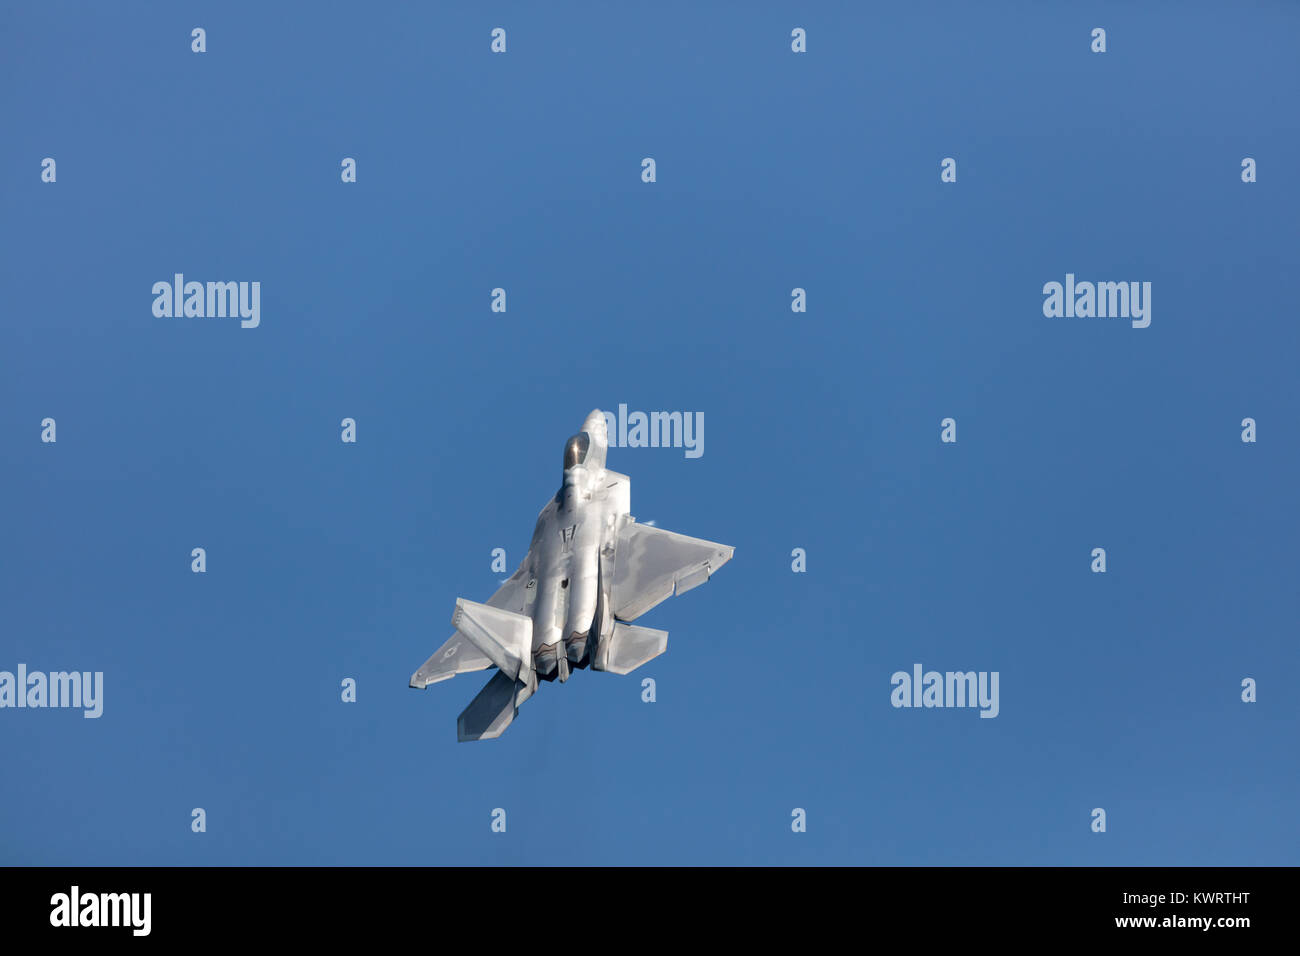 USA, Chicago - August 19: A U.S. Air Force F-35 Joint Strike Fighter (Lightning II) jet flying. This F-35 is assigned - Stock Image